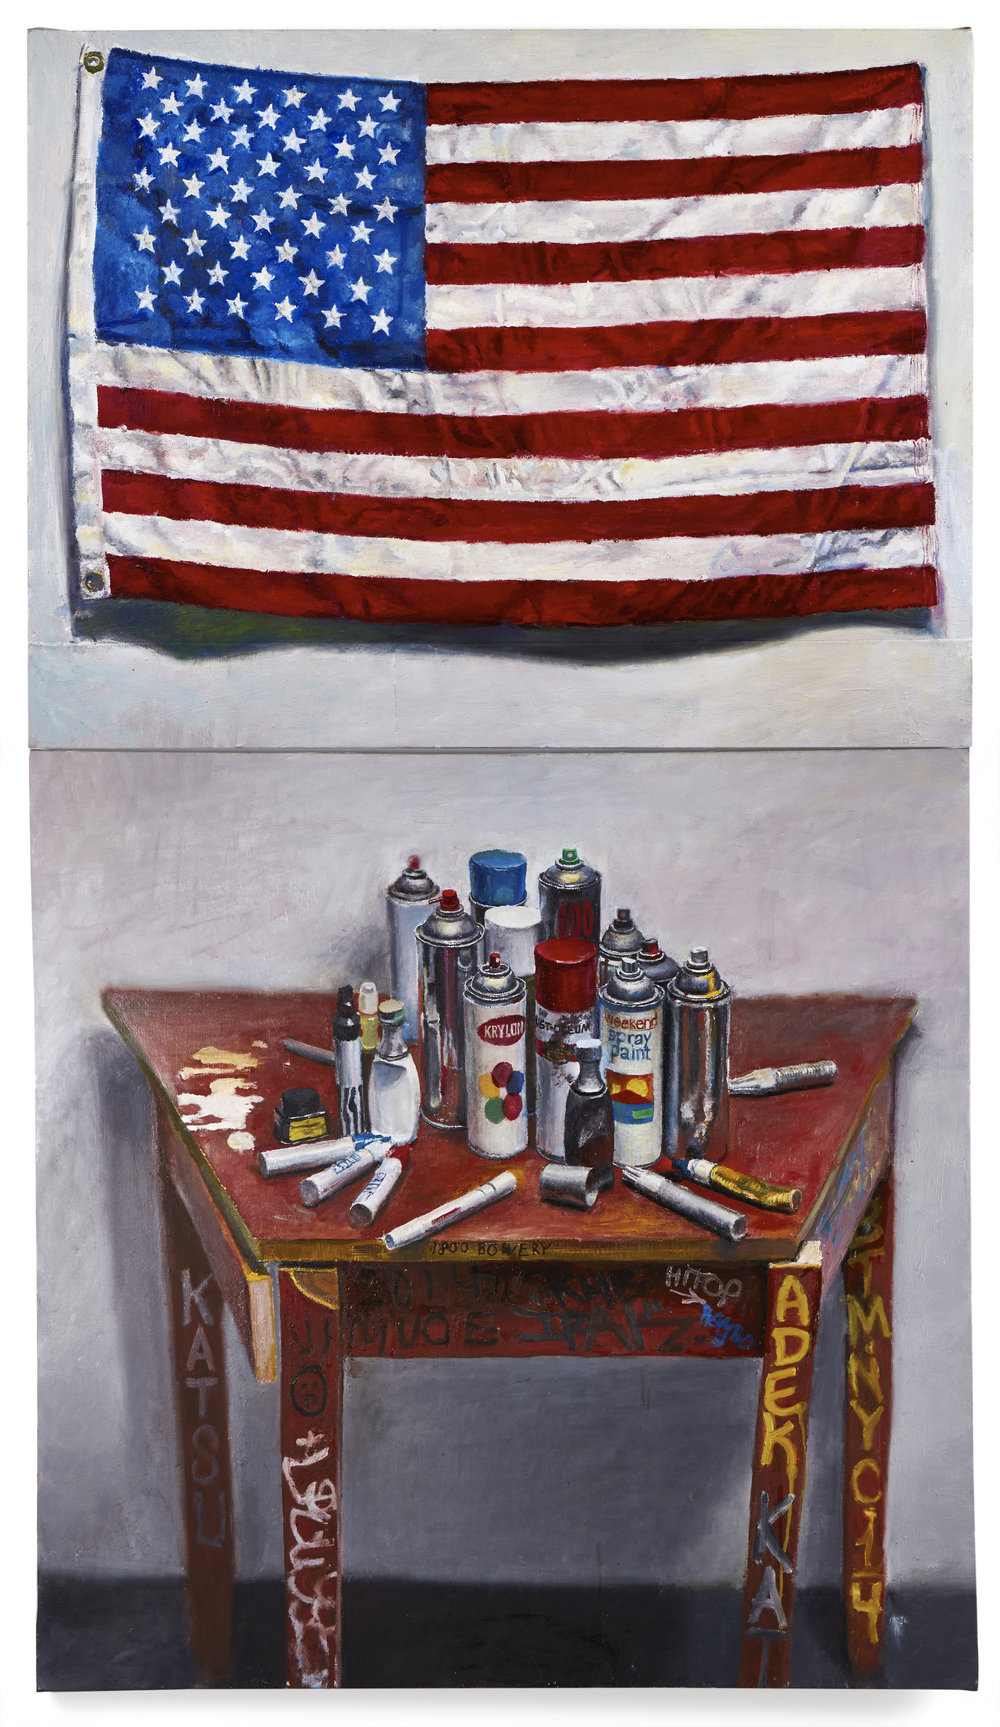 Jesse Edwards American Graffiti, 2009, oil on linen 74 x 42 inches  © Jesse Edwards, Photo by Argenis Apolinario, Courtesy the artist and Vito Schnabel Projects, New York.